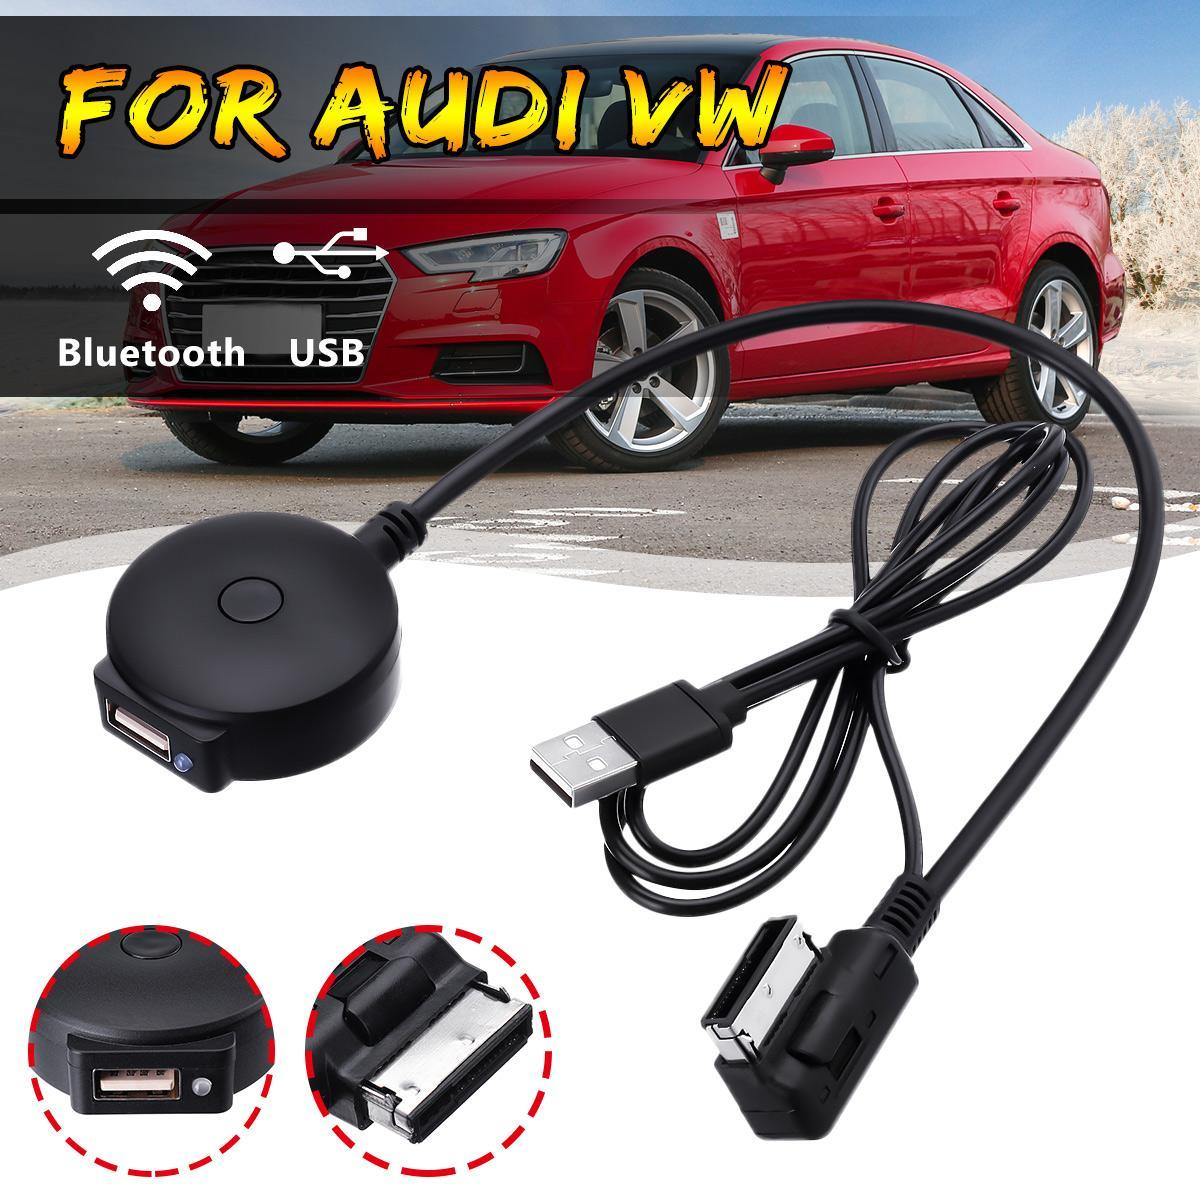 Audi VW Bluetooth Music Streaming Kit iPod Media Interface Cable MMI